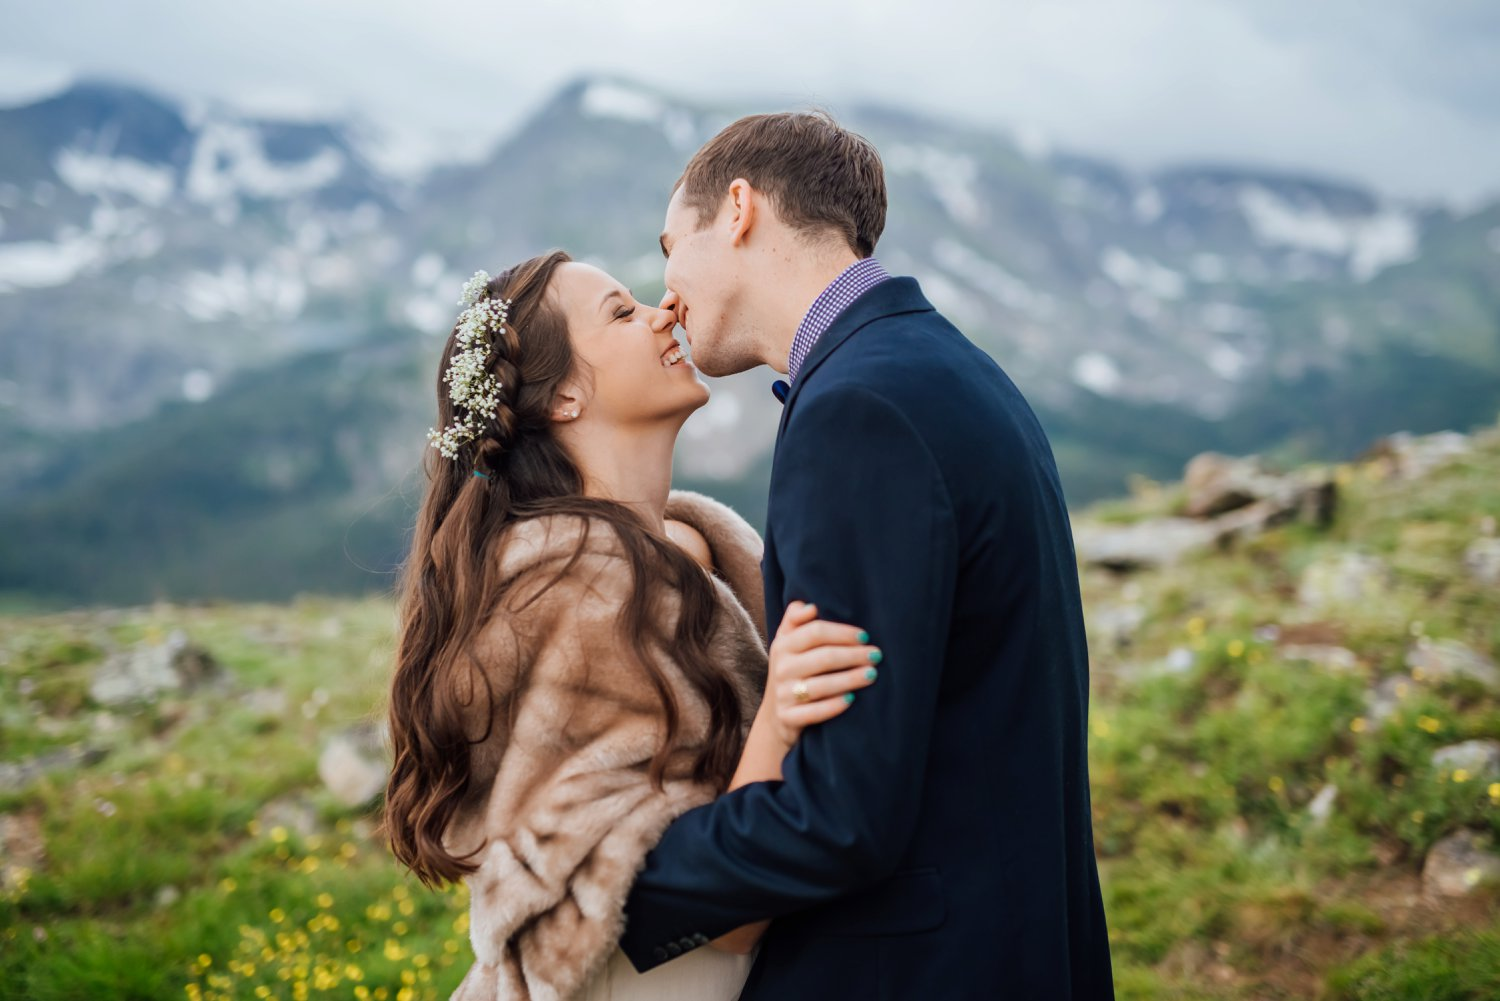 Her fur shawl is absolutely perfect for a colder, mountain wedding. I also love her flower crown. It's subtle and classic. Photo by Maddie Mae Photography